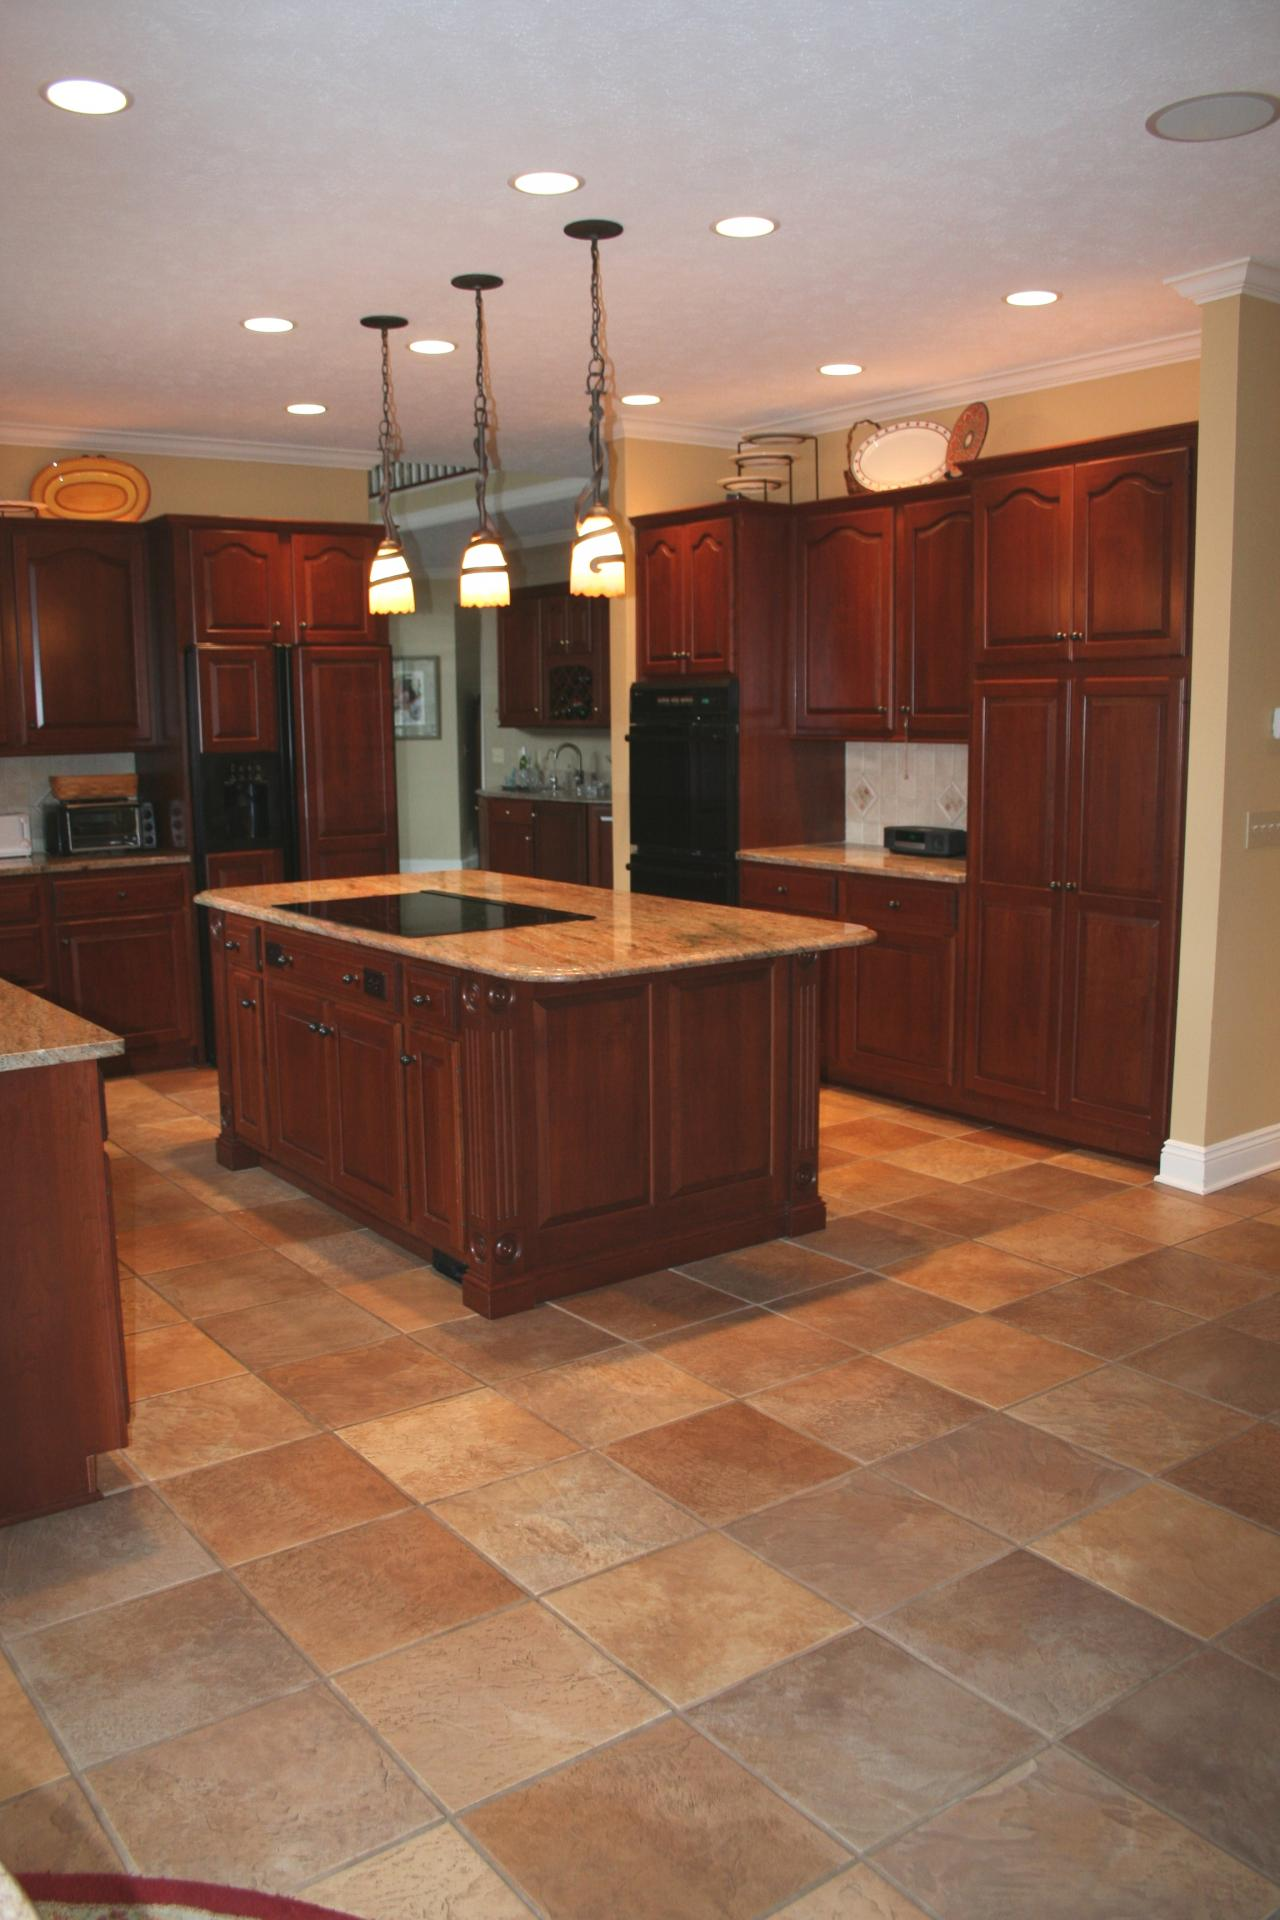 Nest Homes Construction Floor And Wall Tile Designs